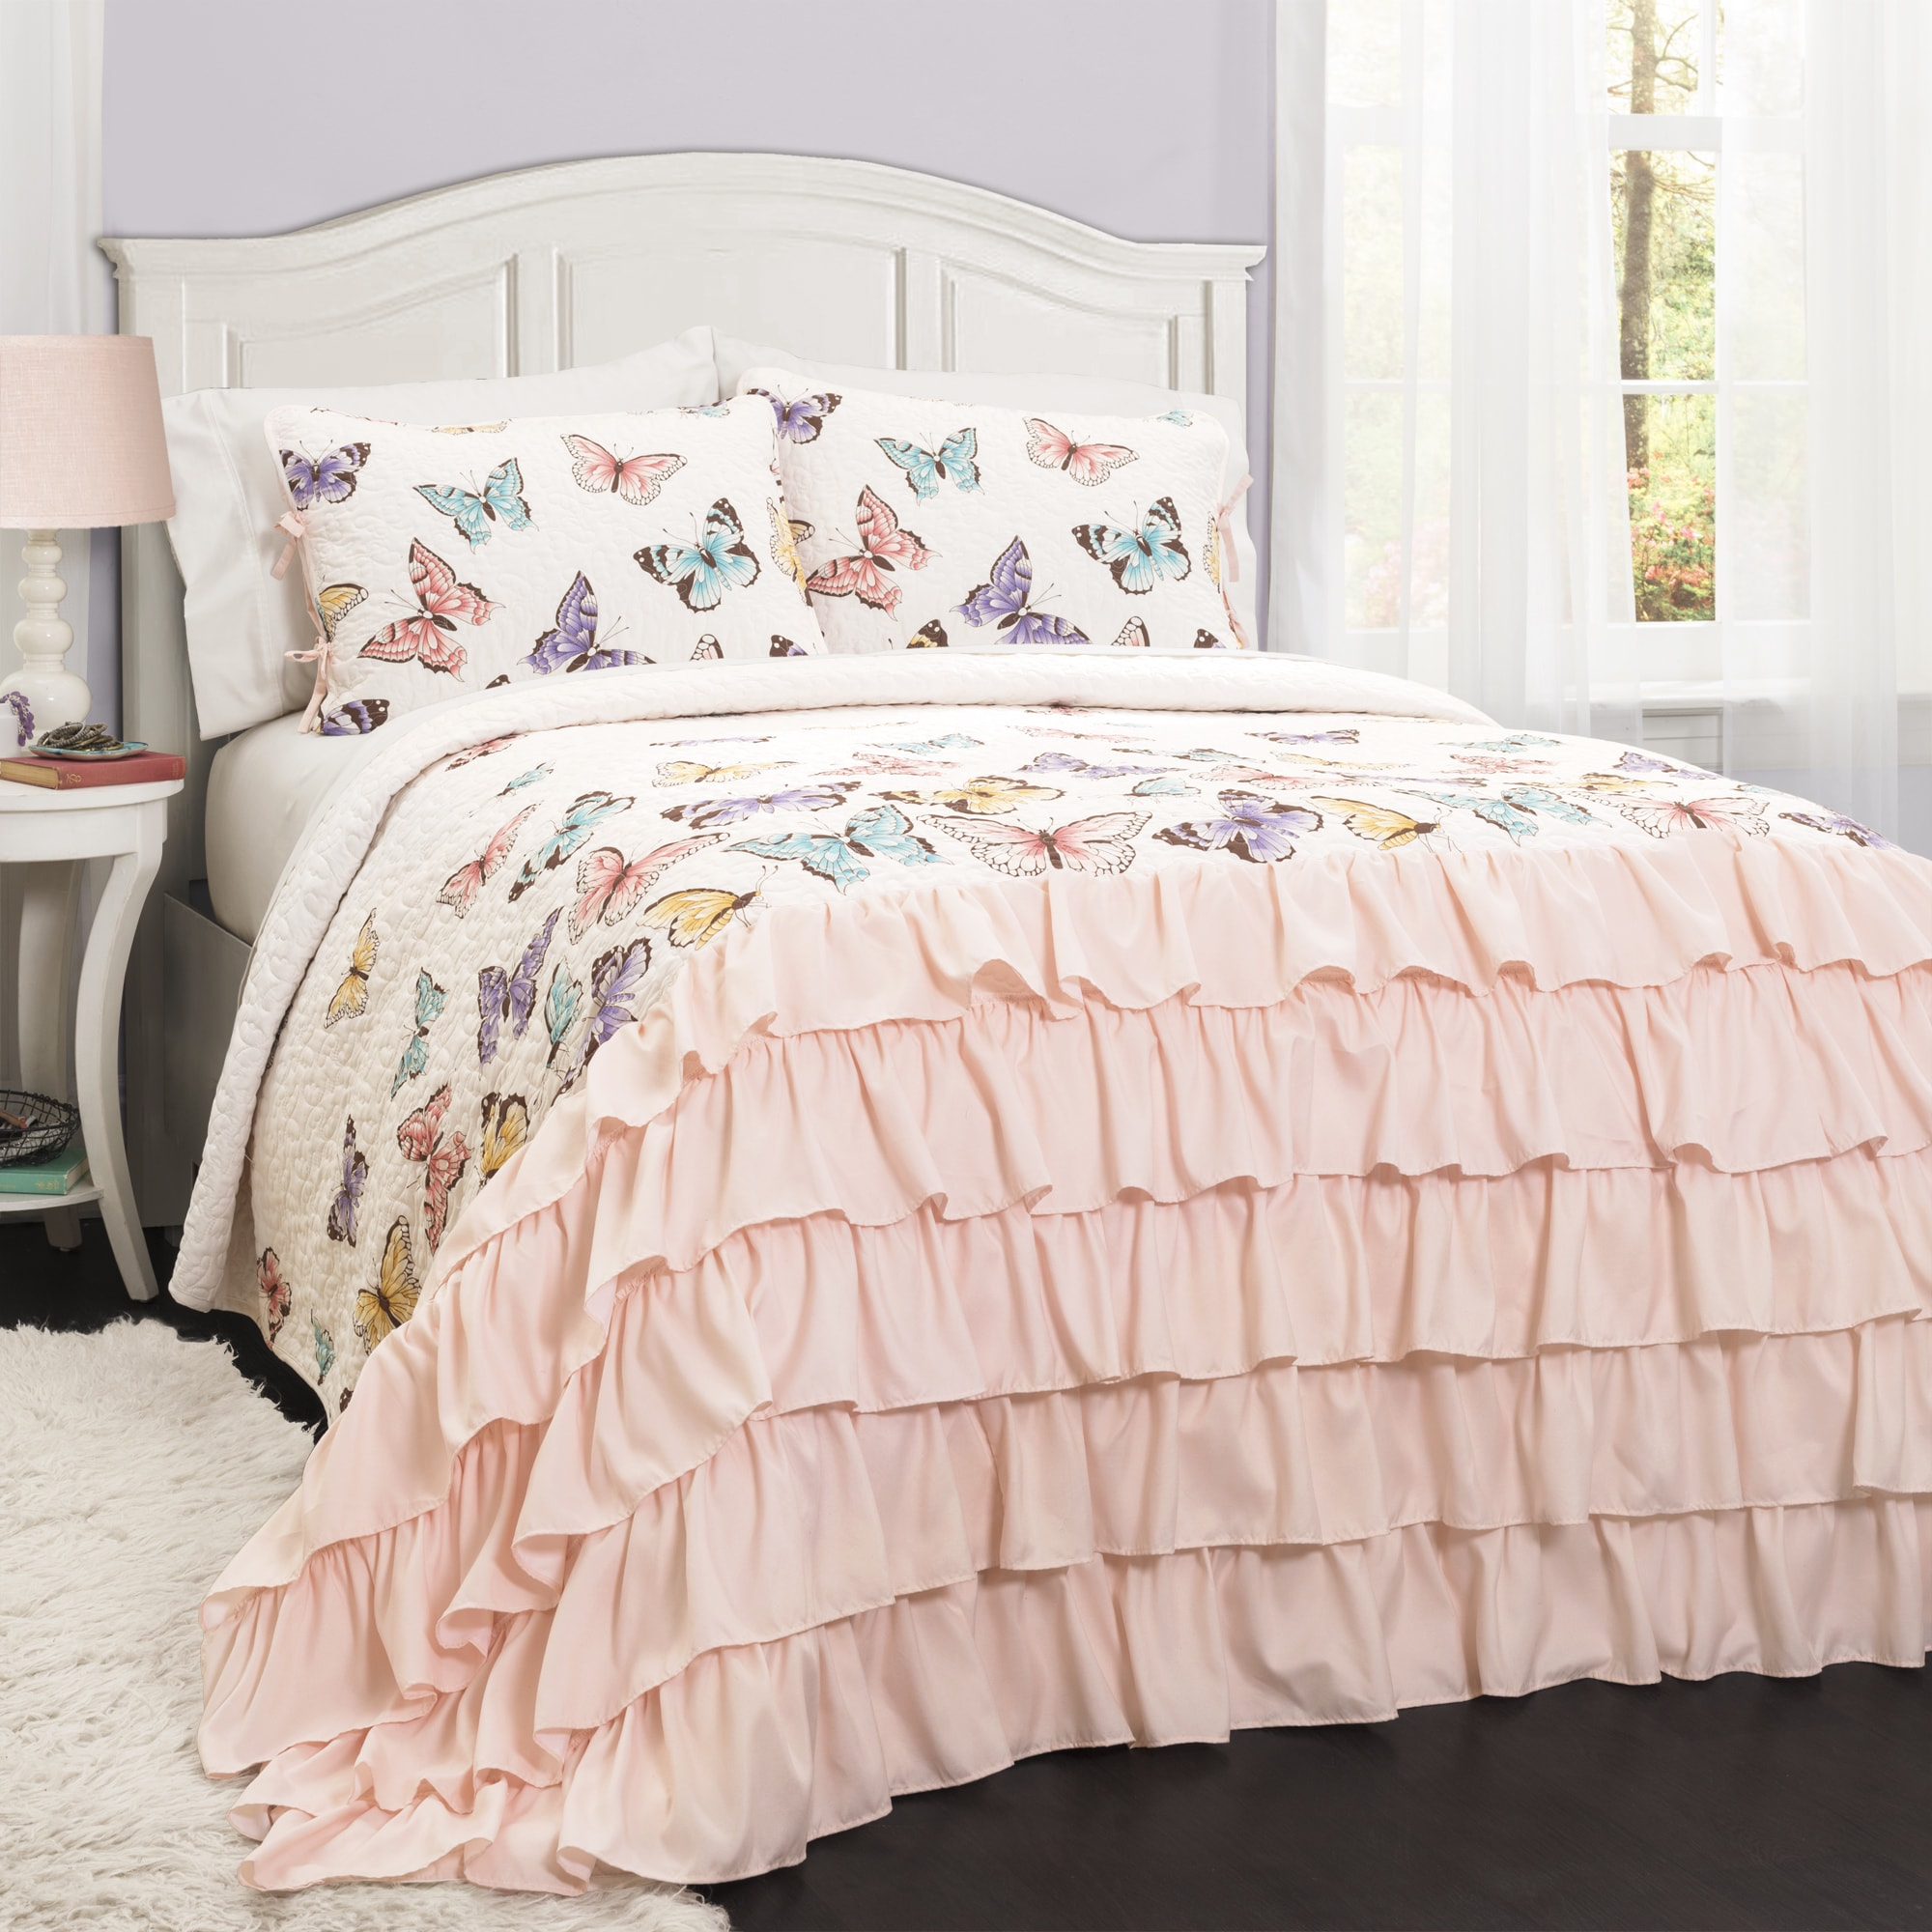 set com lavendar comforter walmart pam lovebird creations grace crib bedding ip butterfly piece